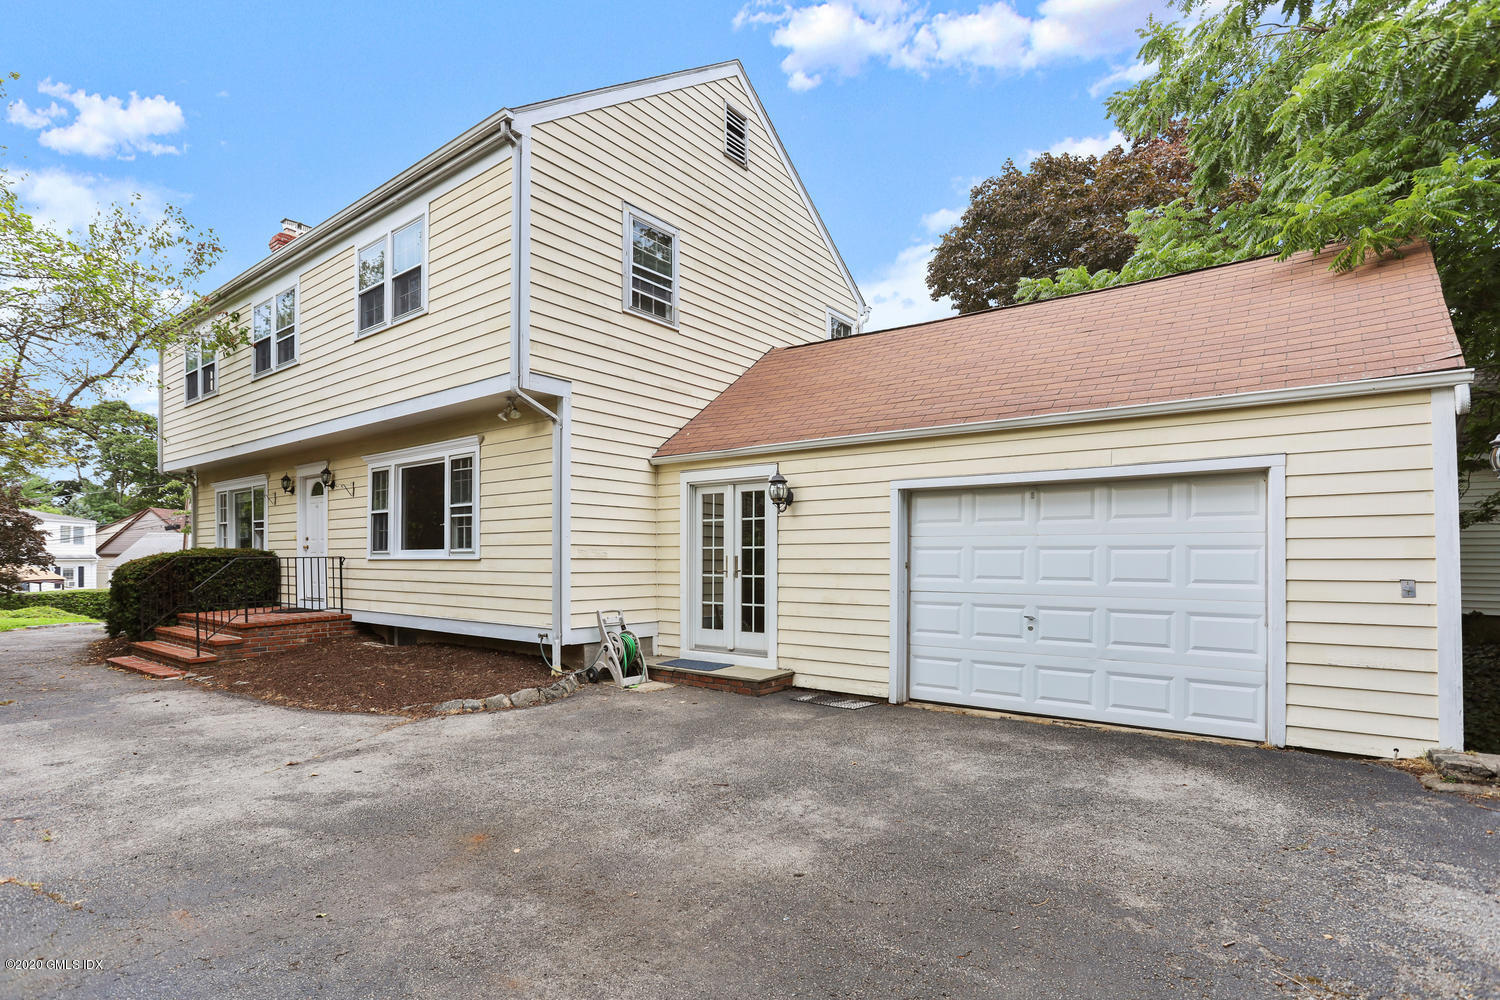 5 Windy Knolls, Greenwich, Connecticut 06831, 4 Bedrooms Bedrooms, ,2 BathroomsBathrooms,Single family,For sale,Windy Knolls,110731